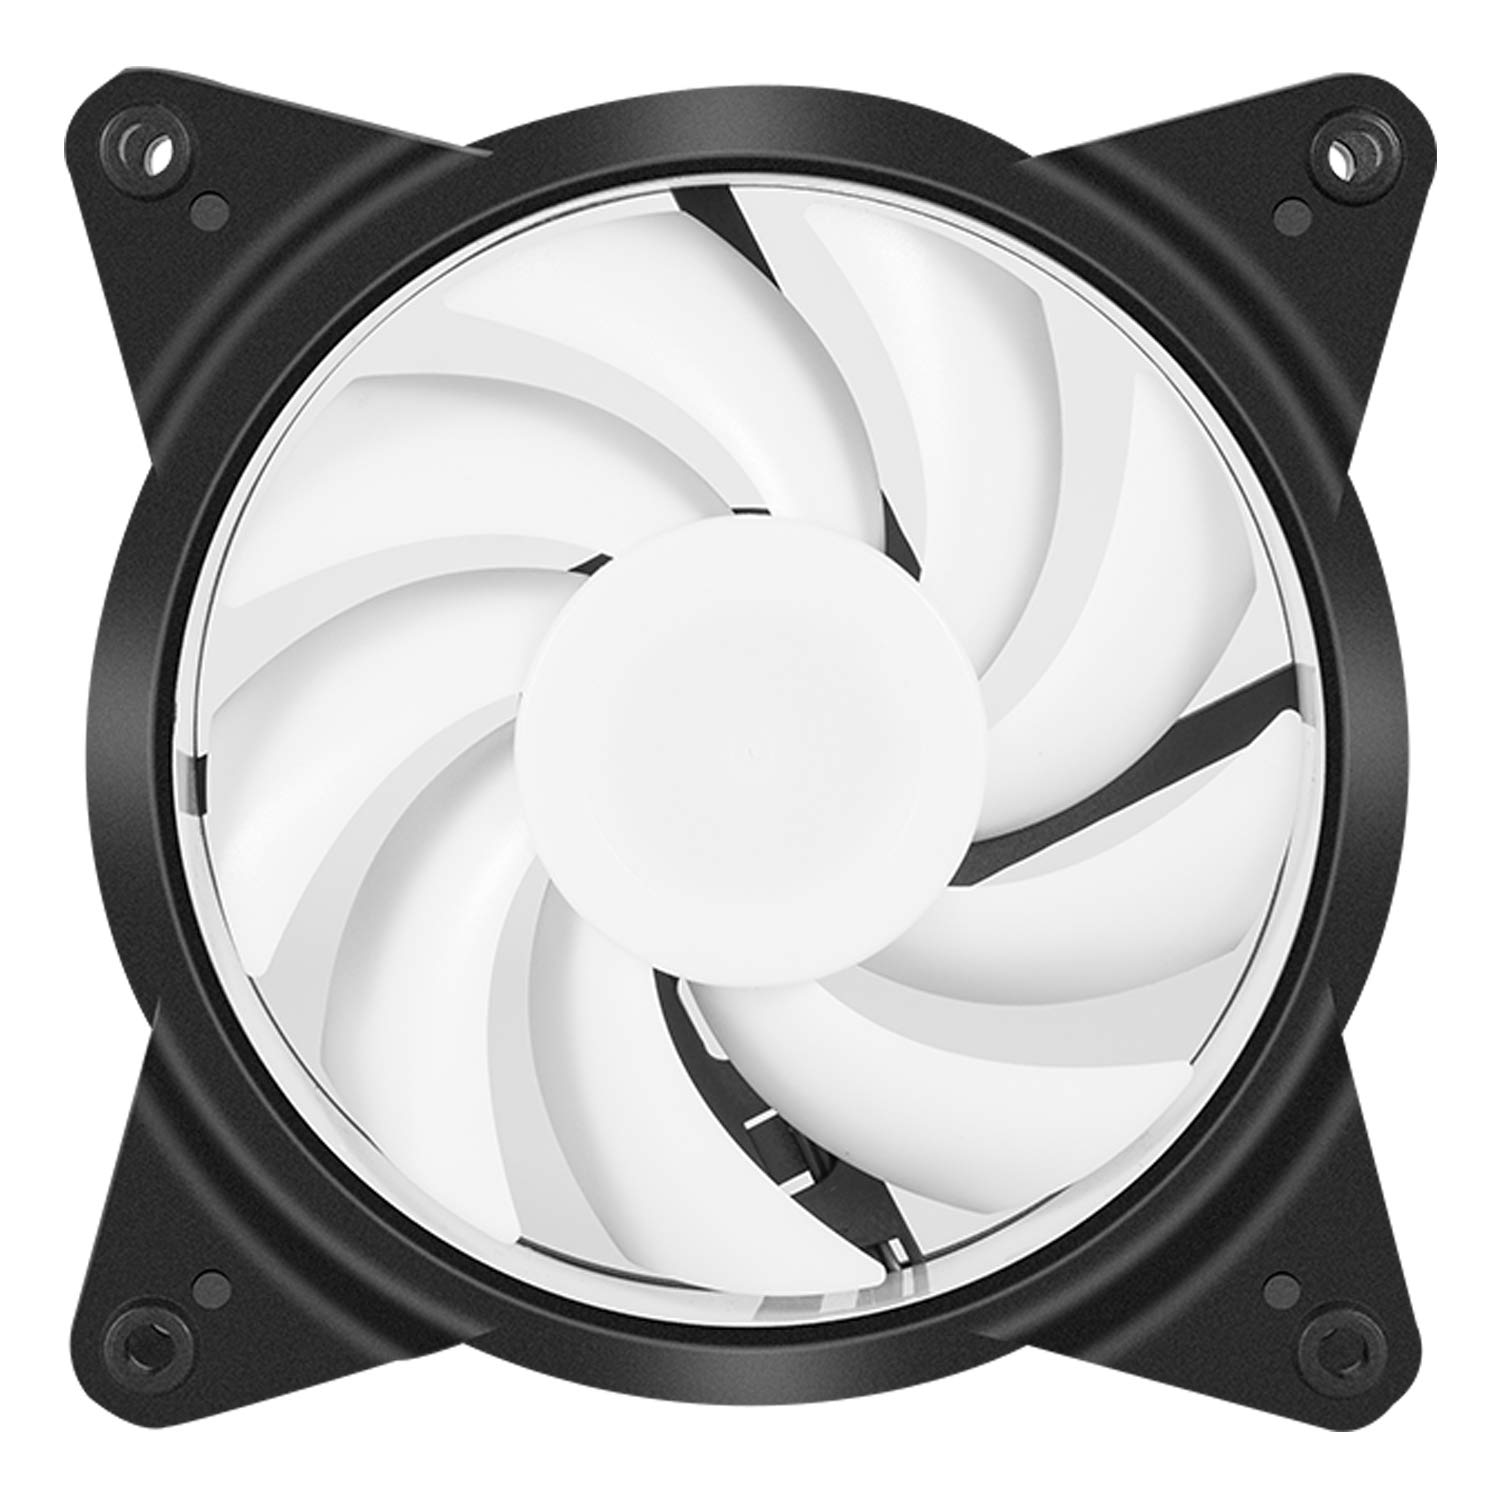 upHere 6-Pack 120mm Silent Intelligent Control Addressable RGB Fan Adjustable Colorful Fans with Controller and Remote,T6C63-6 by upHere (Image #7)